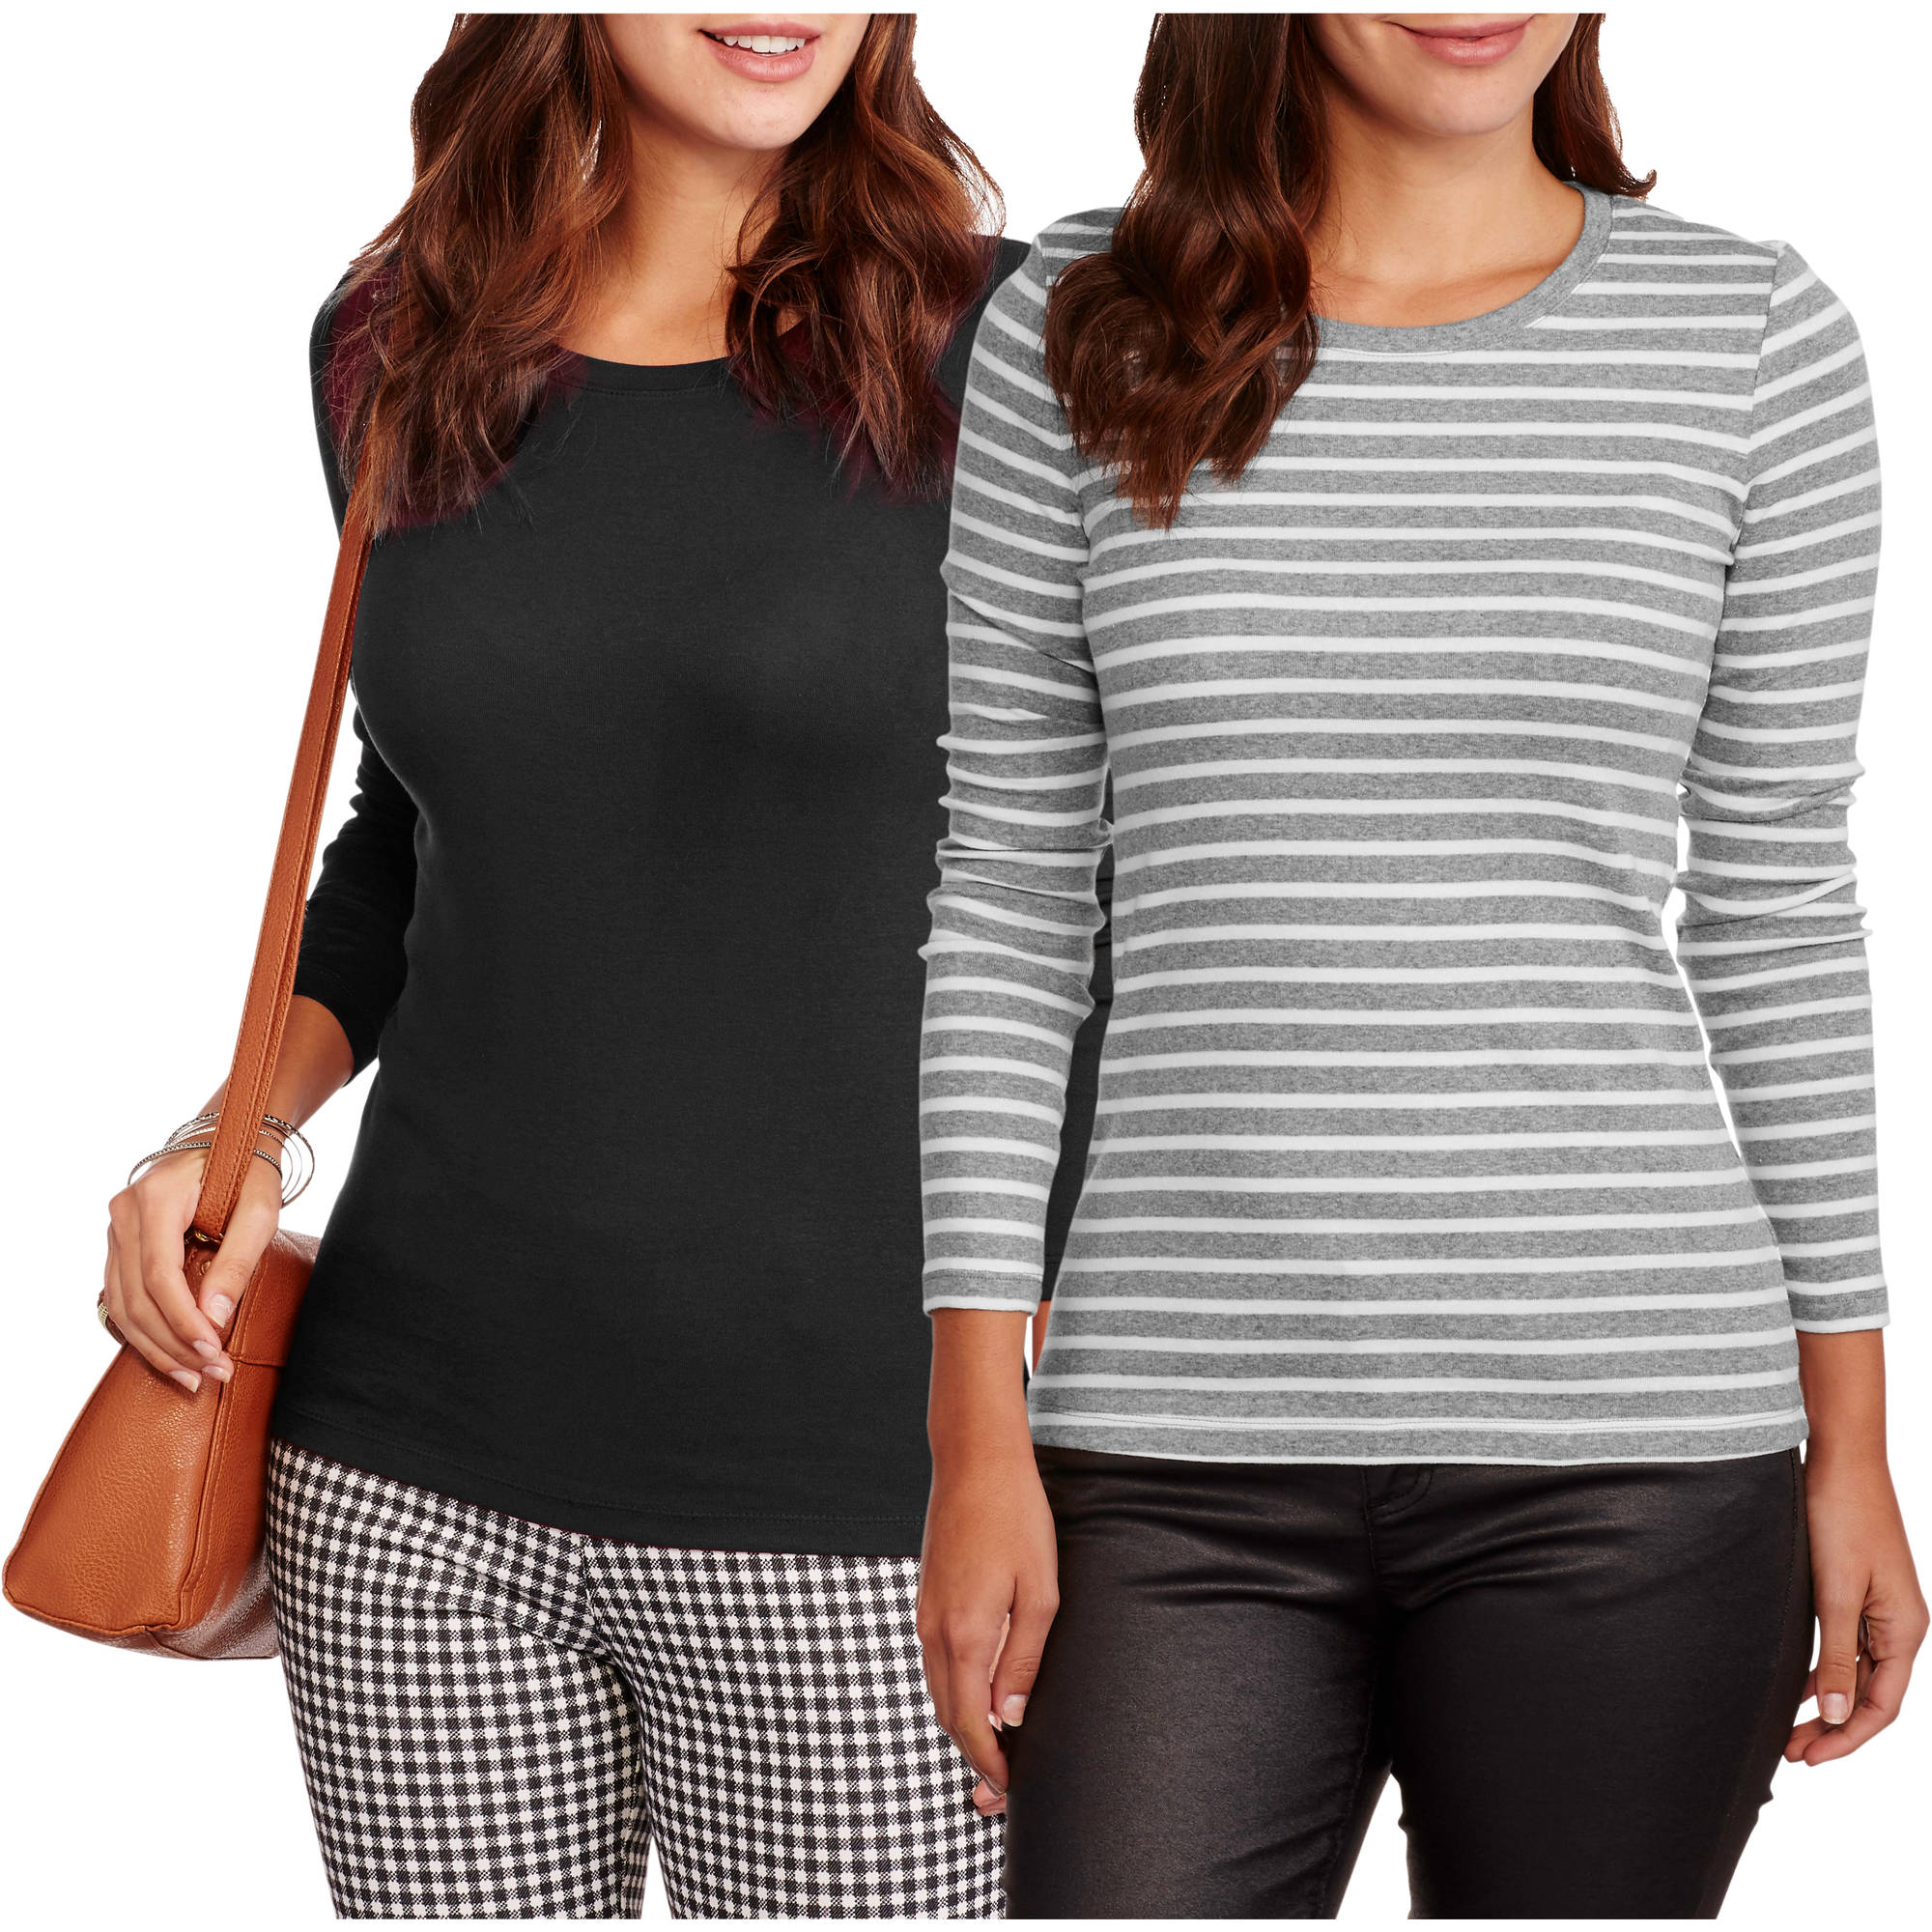 Faded Glory Women's Essential Crewneck T-Shirt 2-Pack Value Bundle